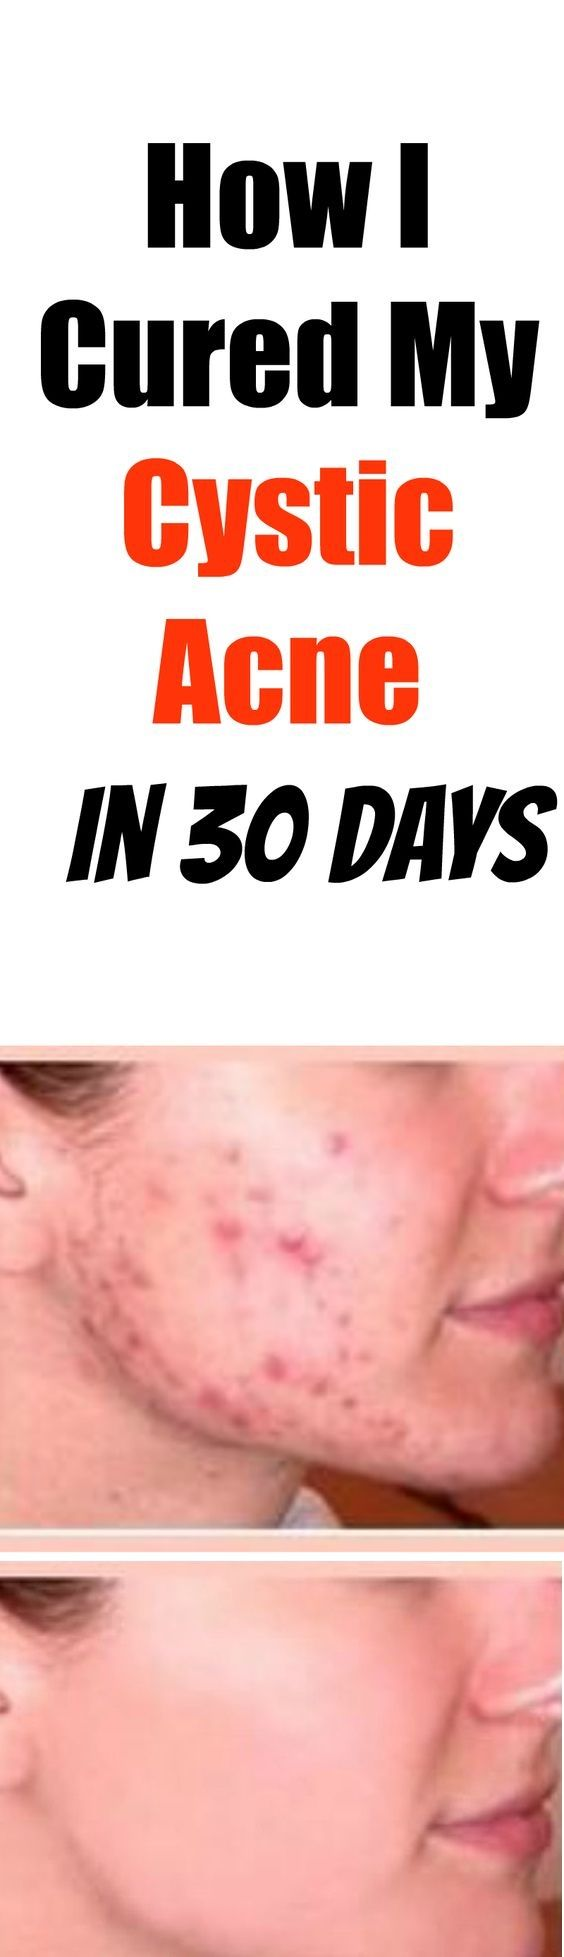 How I Cured My Cystic Acne In  Days  Fitness  Pinterest  Cure